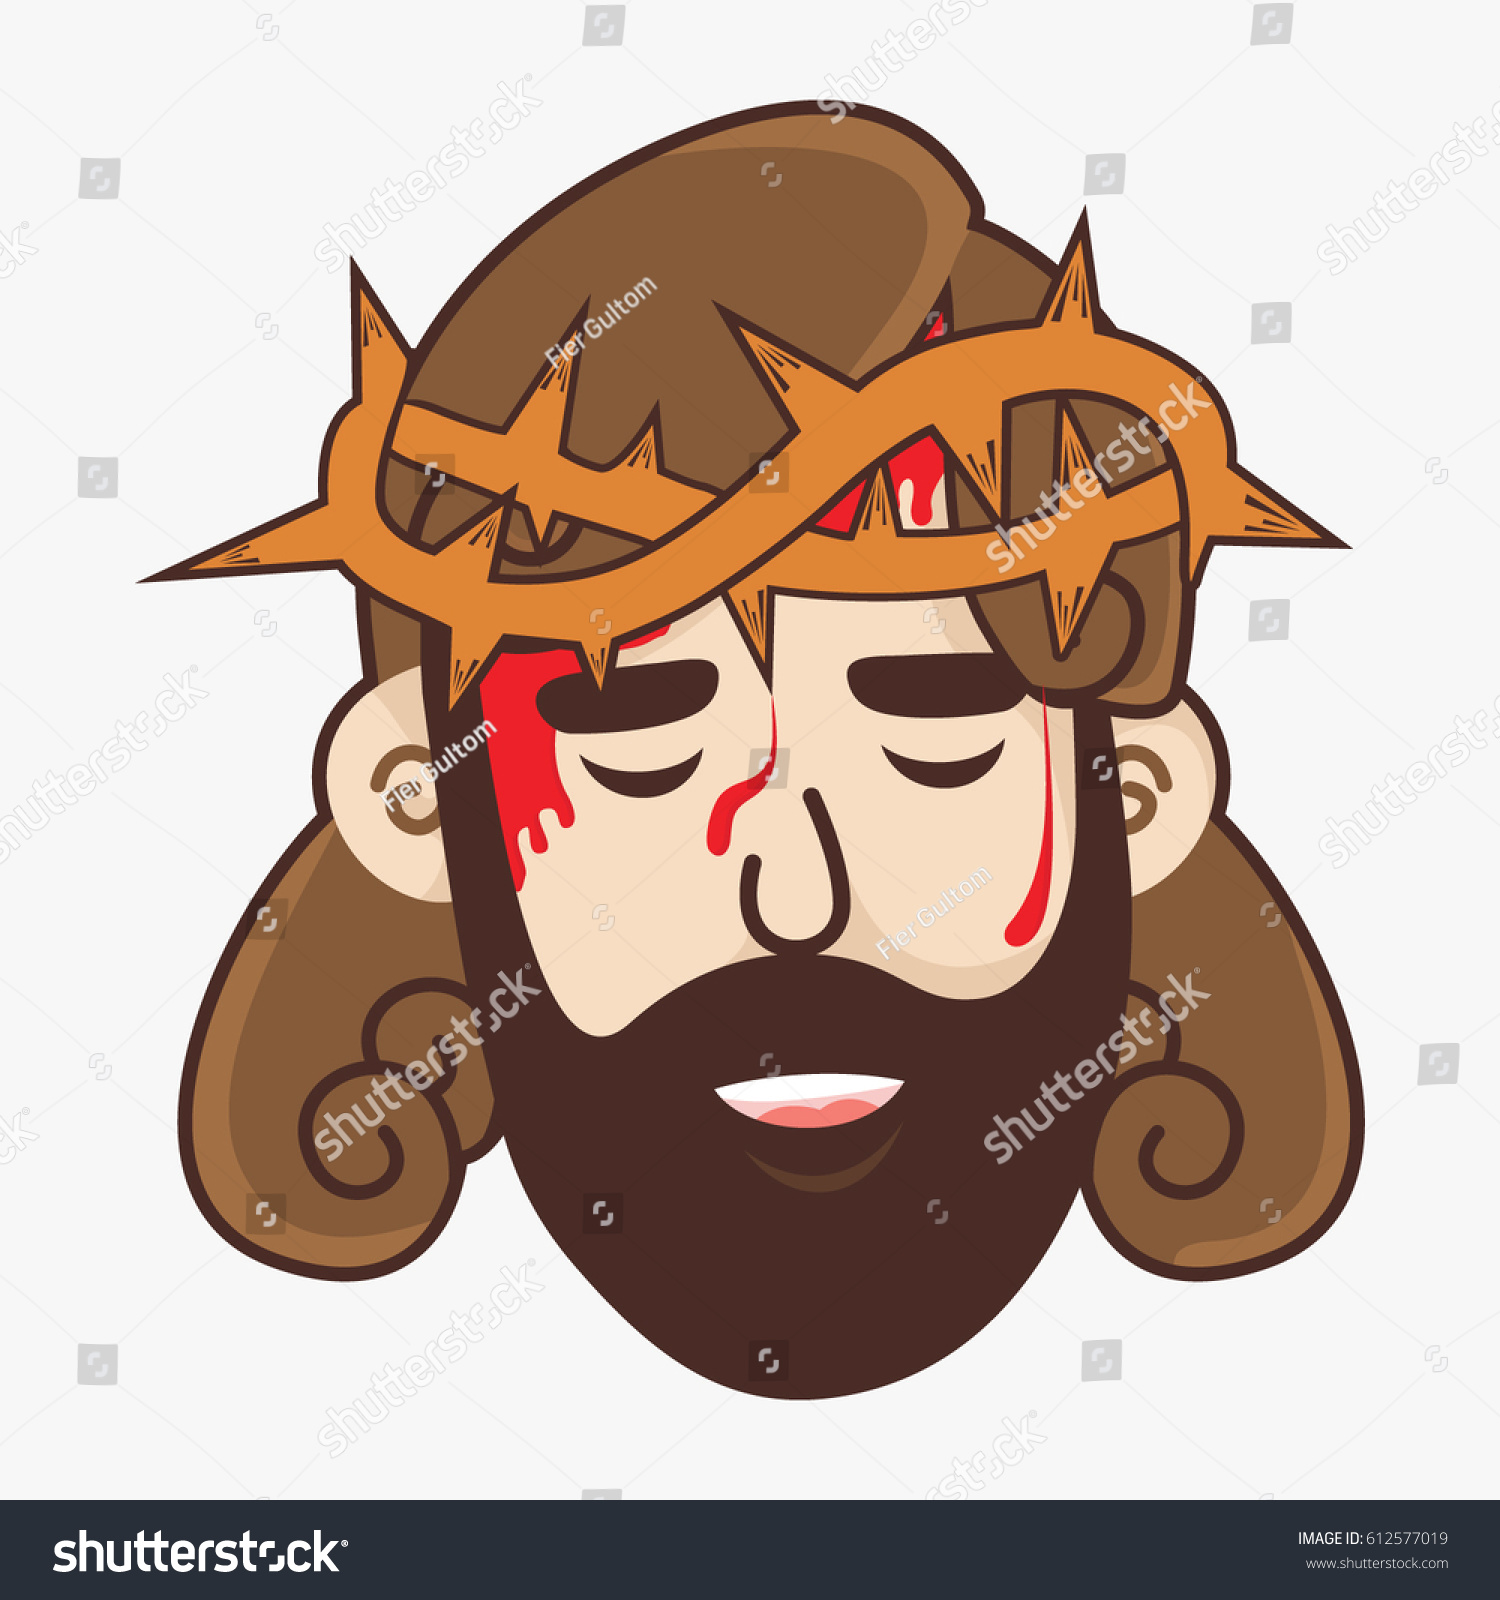 Crown Of Thorns Cartoon : Download thorn crown stock vectors.